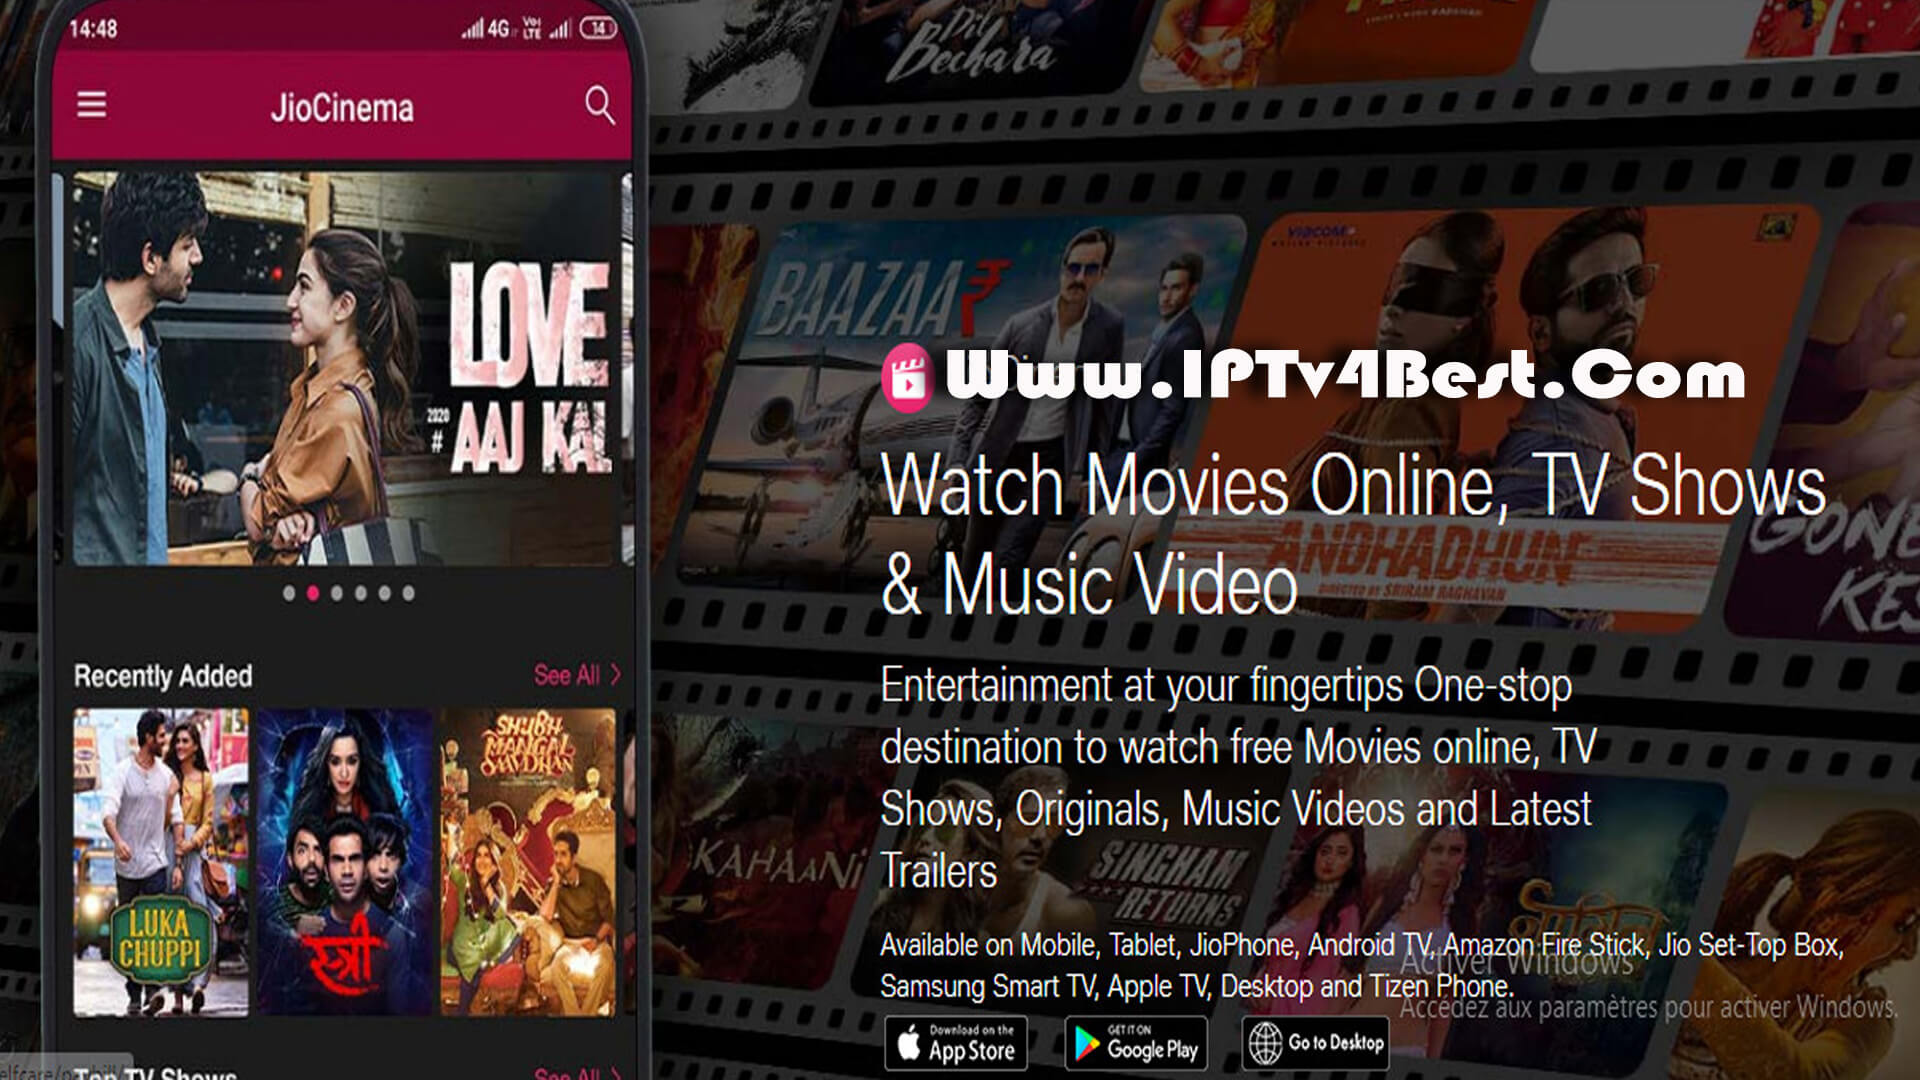 JioCinema APK - Watch Movies TV Shows By IPTV4BEST.COM